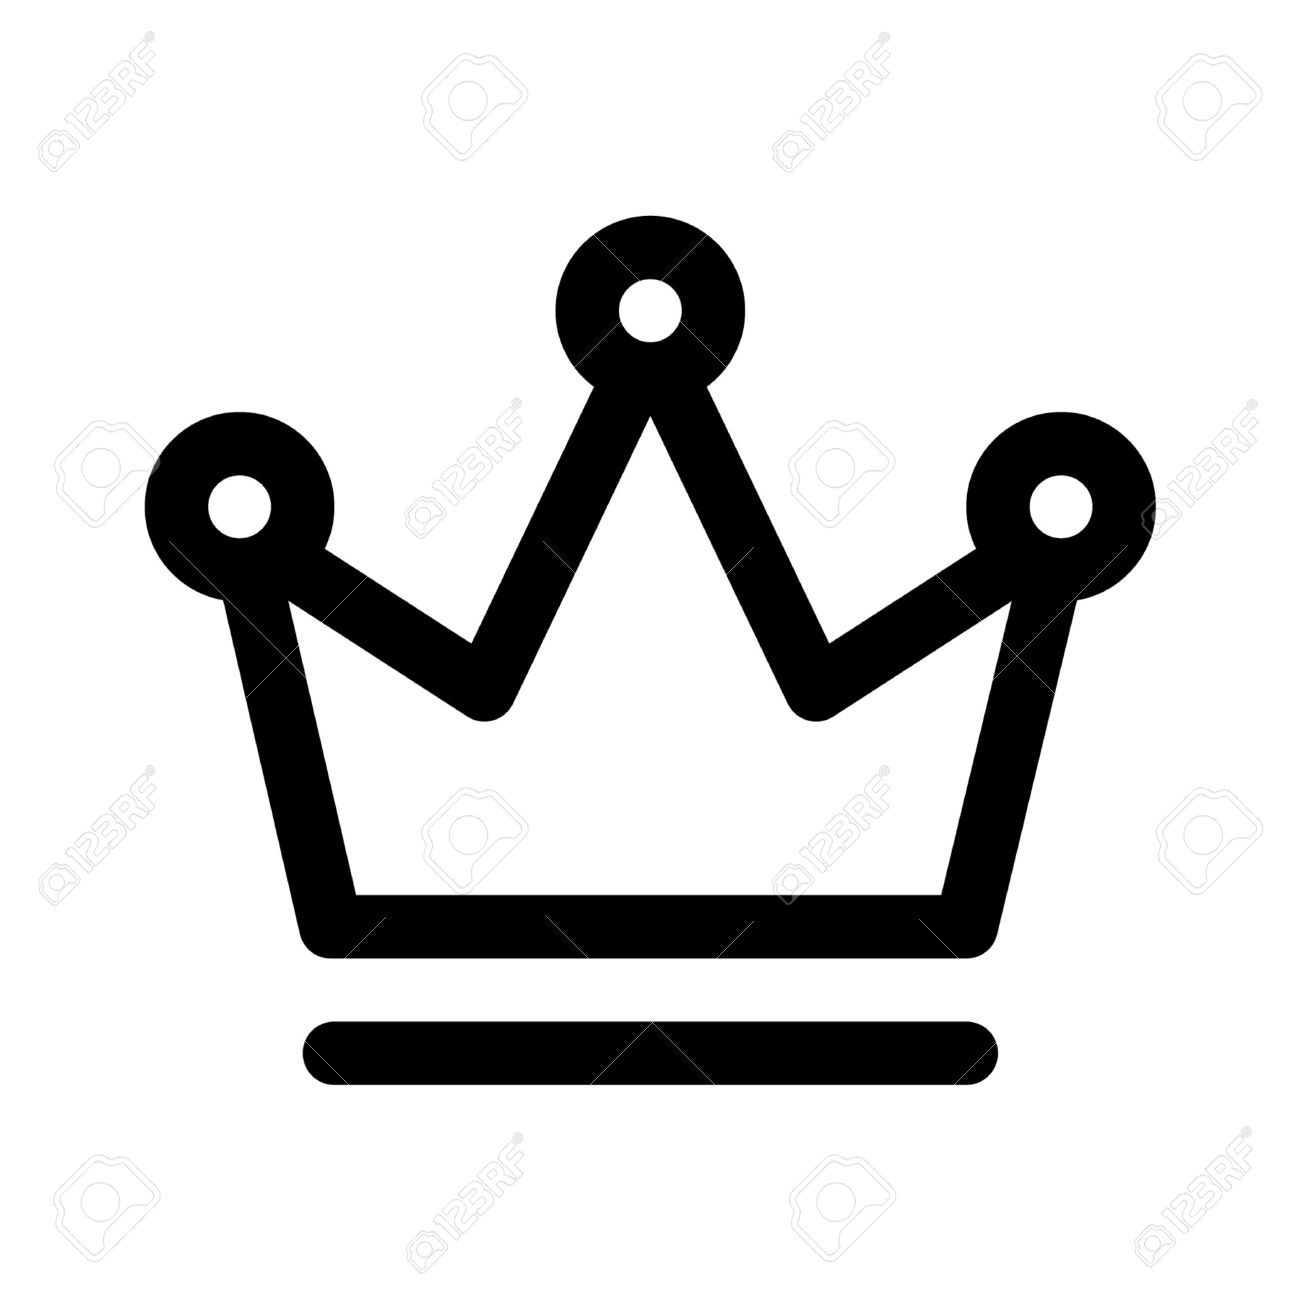 Crown Of The King Line Art Icon For Apps And Websites Stock Vector